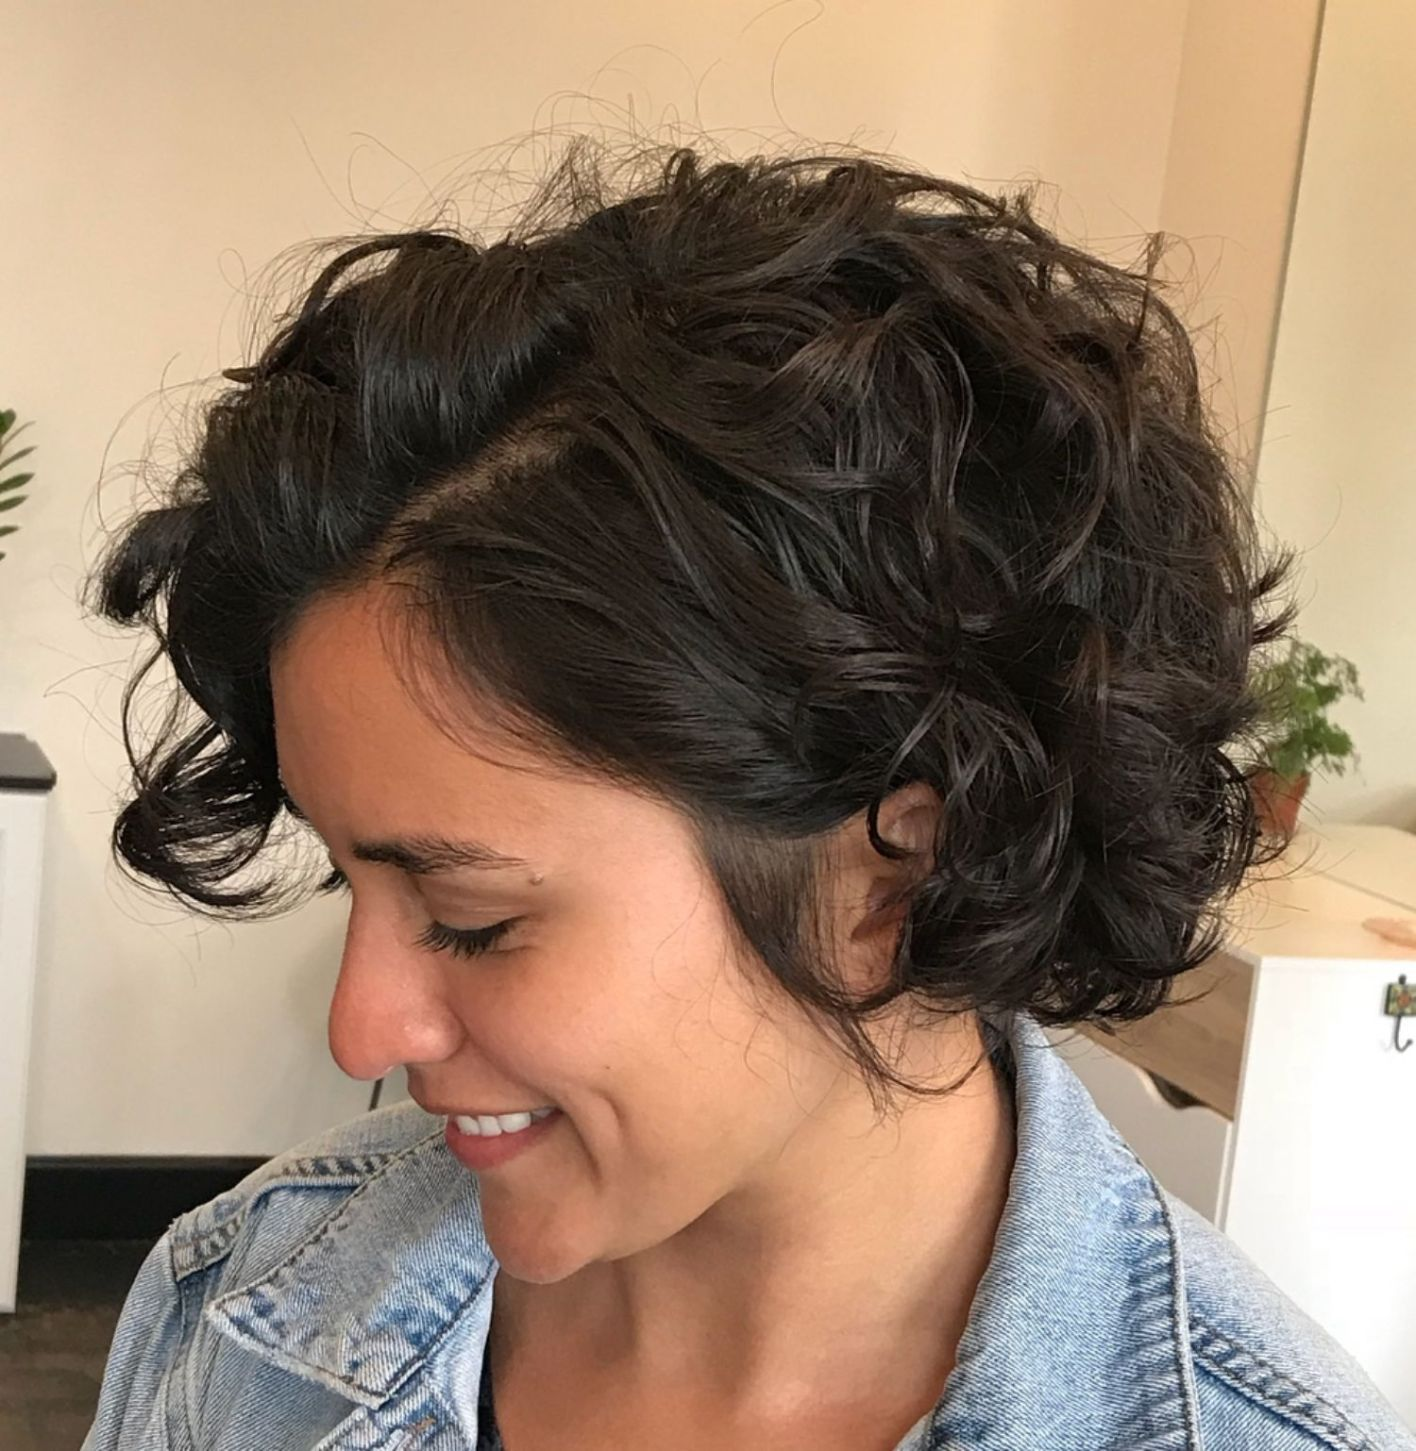 Lovely Curled Bob Hairstyle Bob Kapsel Met Krullen Korte Kapsels Krullend Haar Kort Krullend Haar